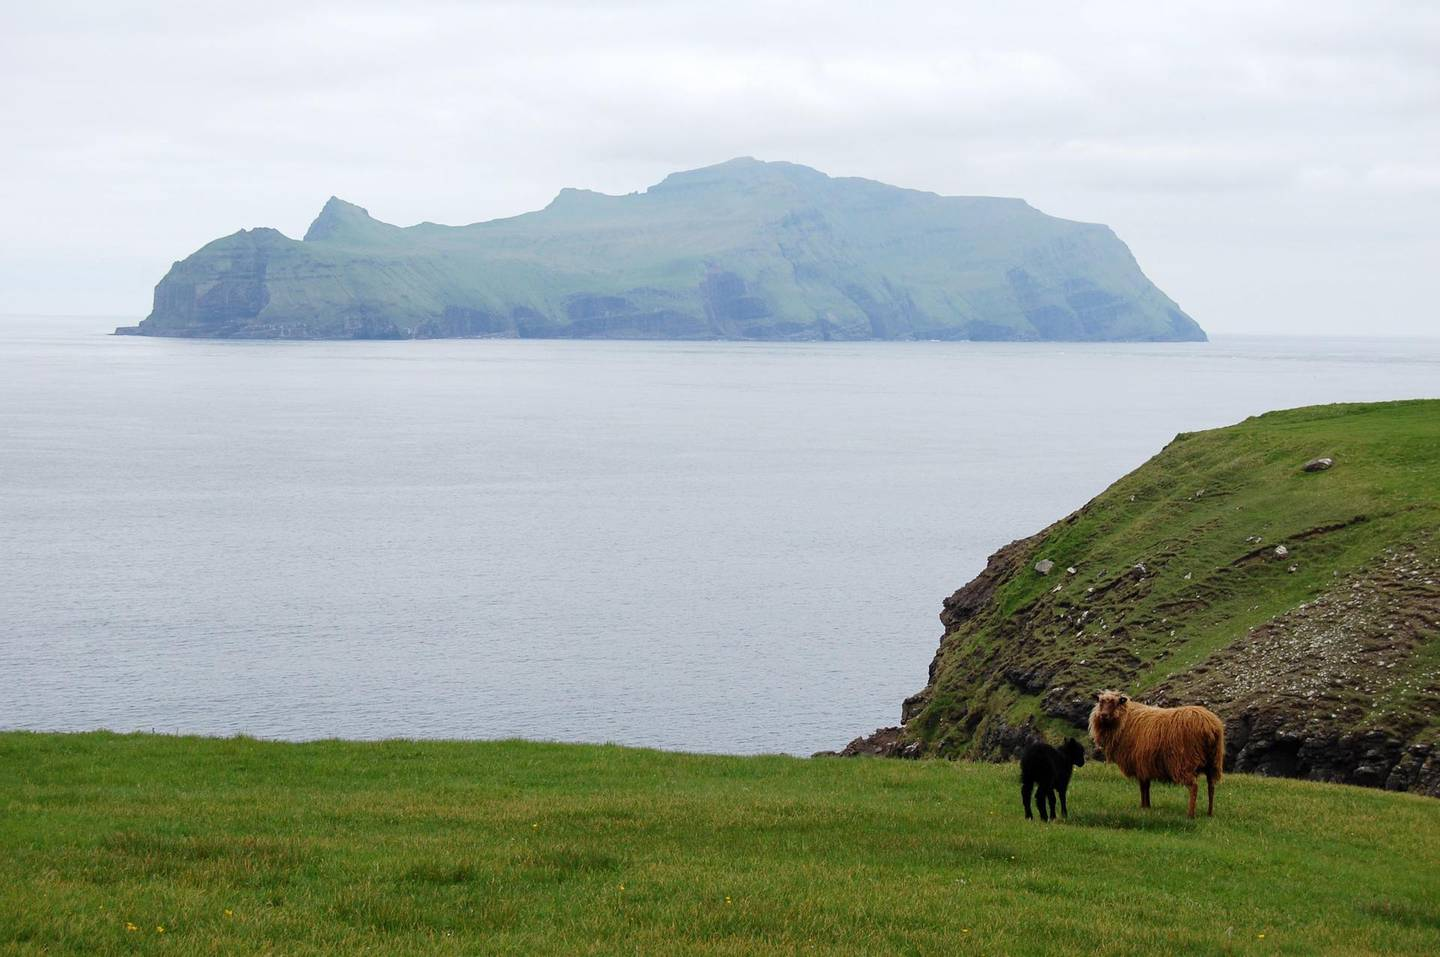 A picture taken on June 6, 2018, shows sheep in a field near the village of Gasadalur in Vagar, one of the Faroe Islands located between the North Atlantic Ocean and Norwegian Sea.  Located more than 1,100 kilometres (more than 680 miles) northwest of powerhouse Copenhagen, the Faroe Islands have since 1948 had their own white, blue and red flag with an offset cross, their own language originating from the Viking's Old Norse and institutions and culture.  / AFP / Pierre-Henry DESHAYES